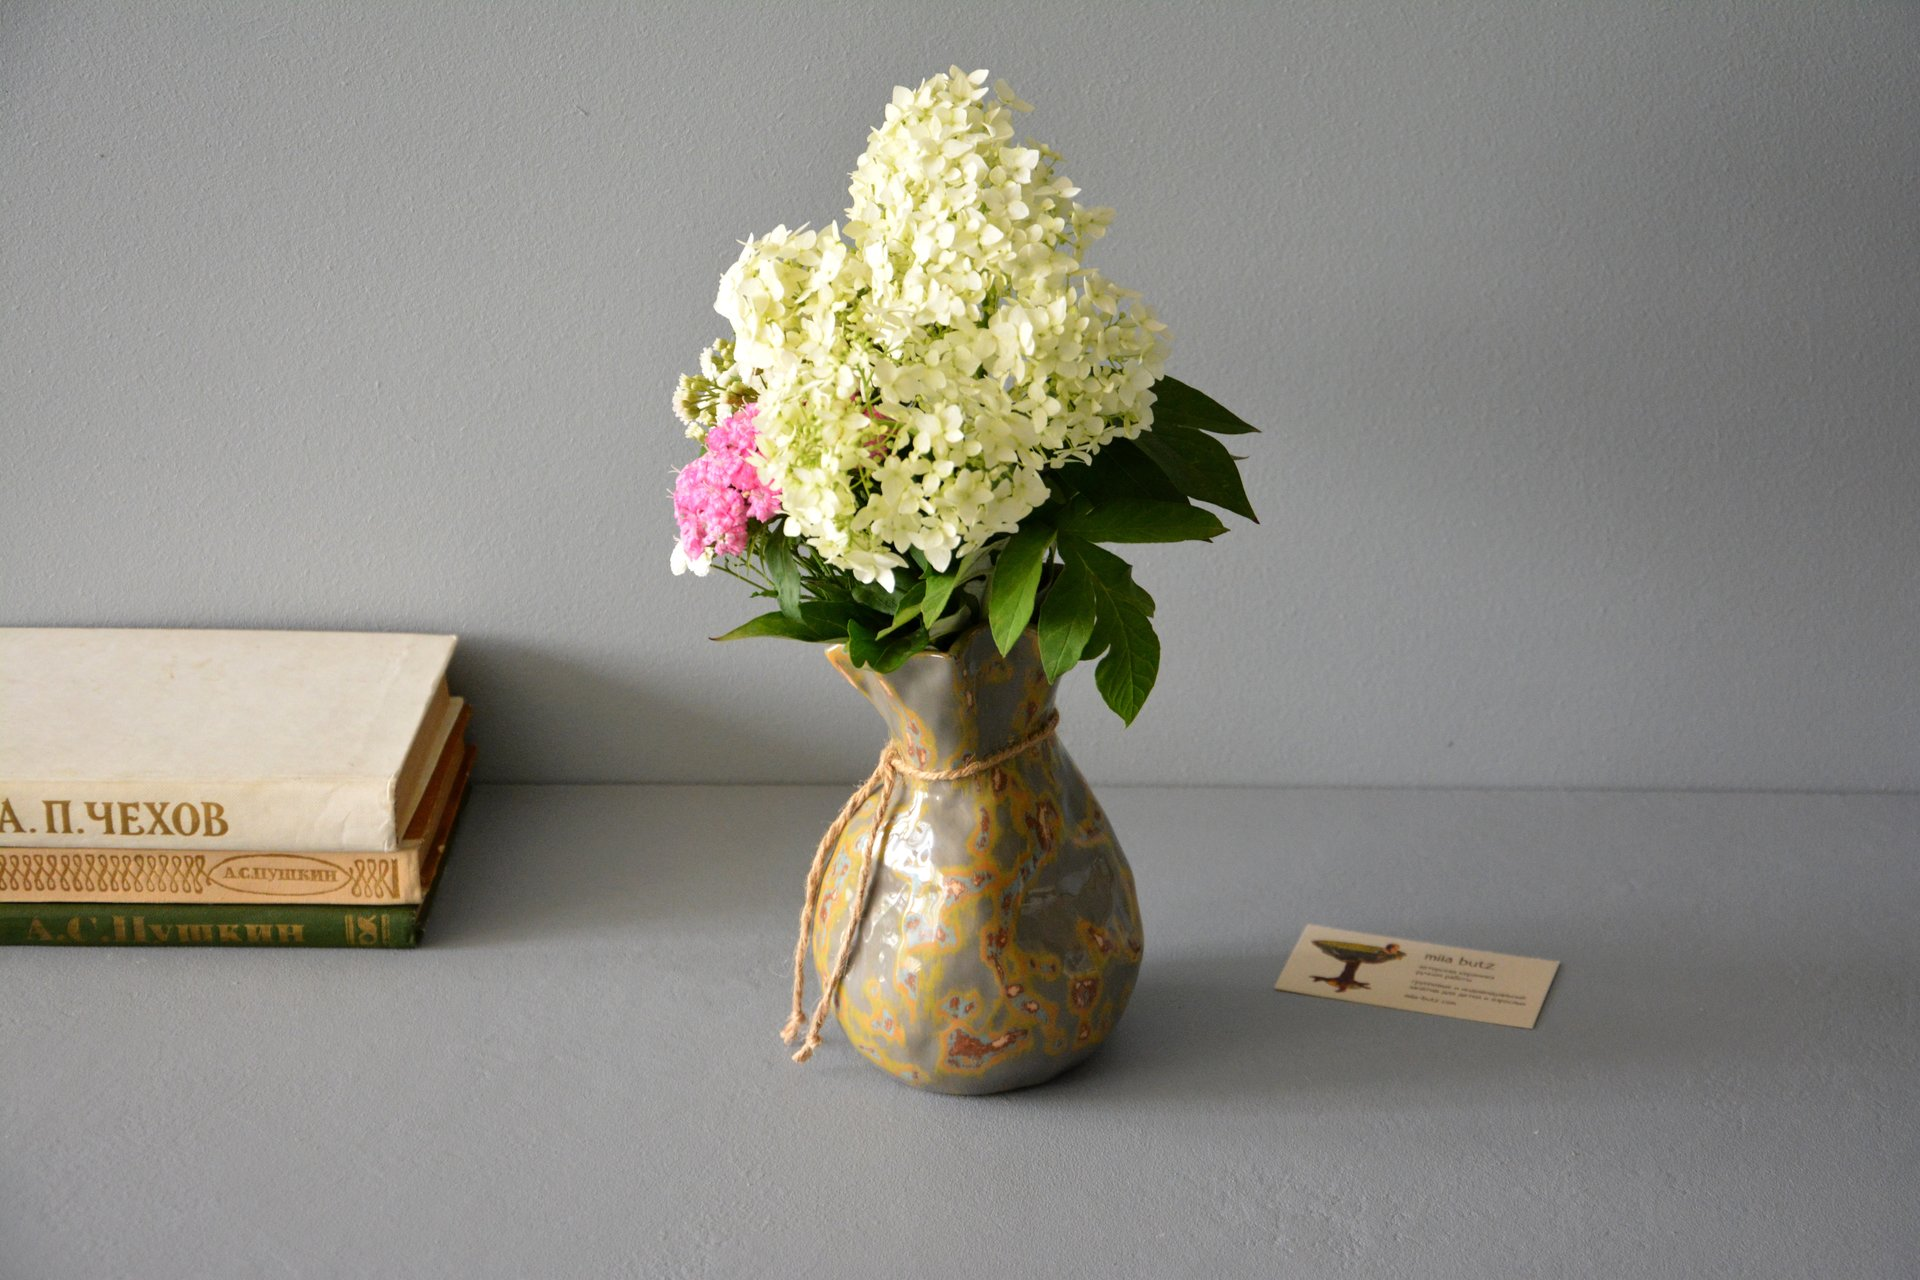 Small Vase or flowers «Shabby gray Bagful», height - 17 cm, color - gray. Photo 990.